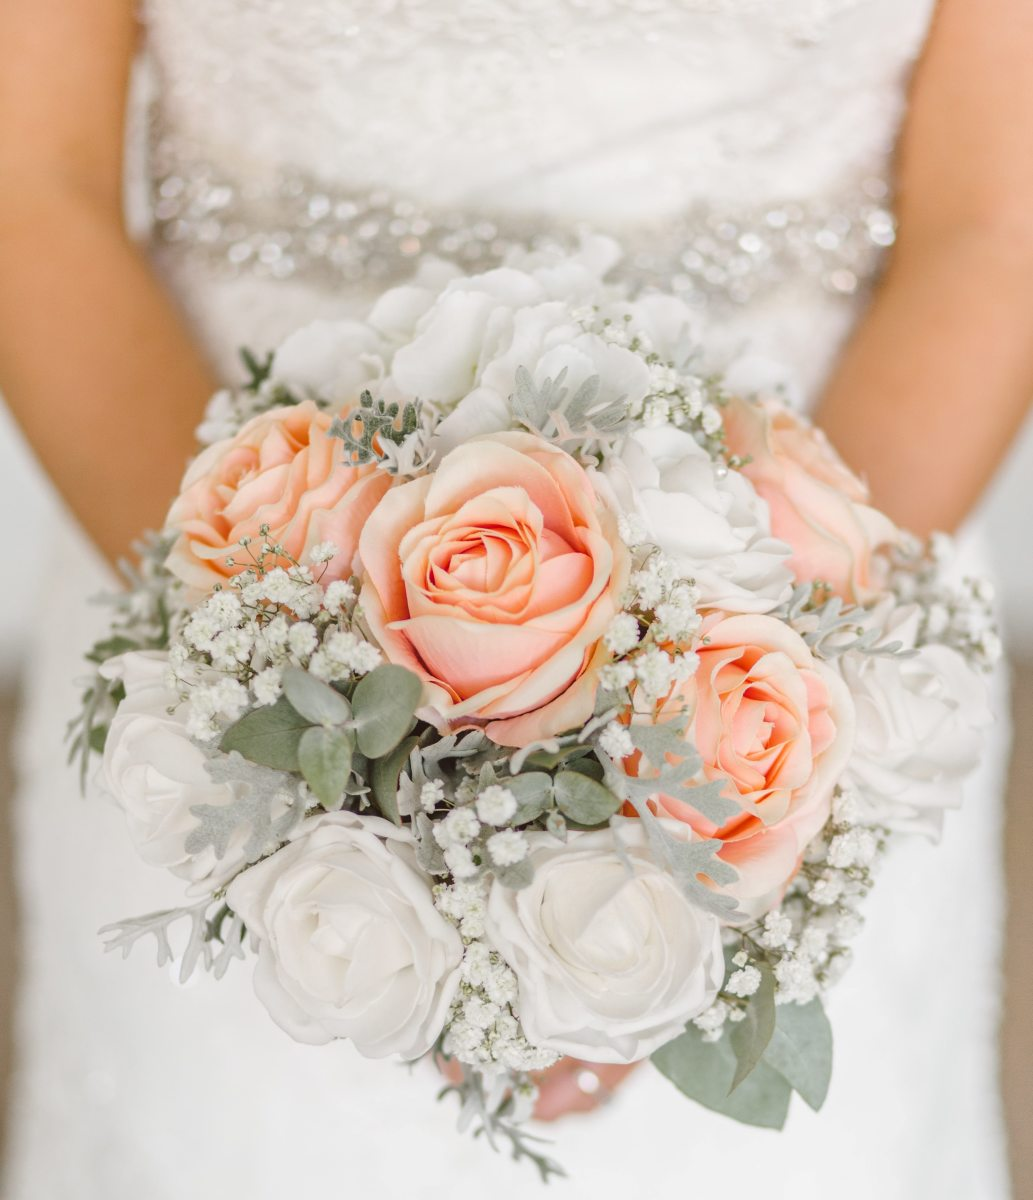 Wedding Bouquet with Three Flowers